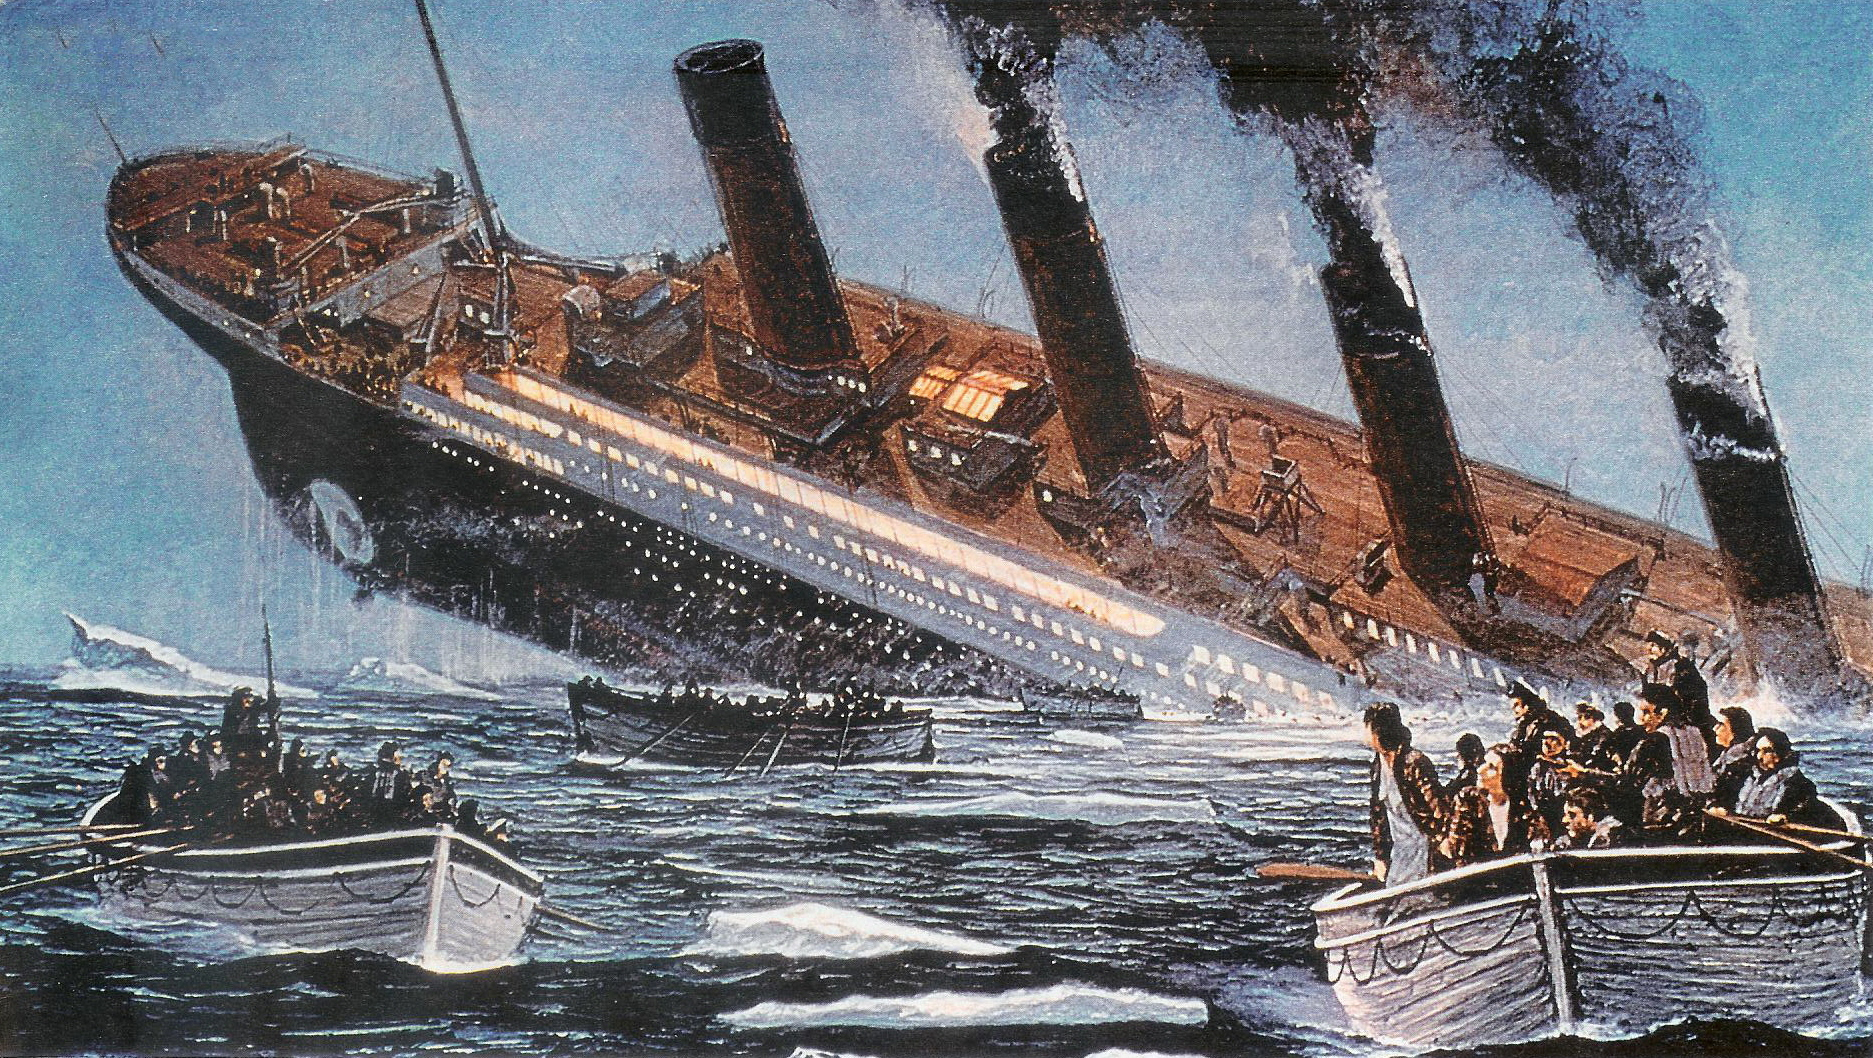 Arranging Deck Chairs On The Titanic Welcome To